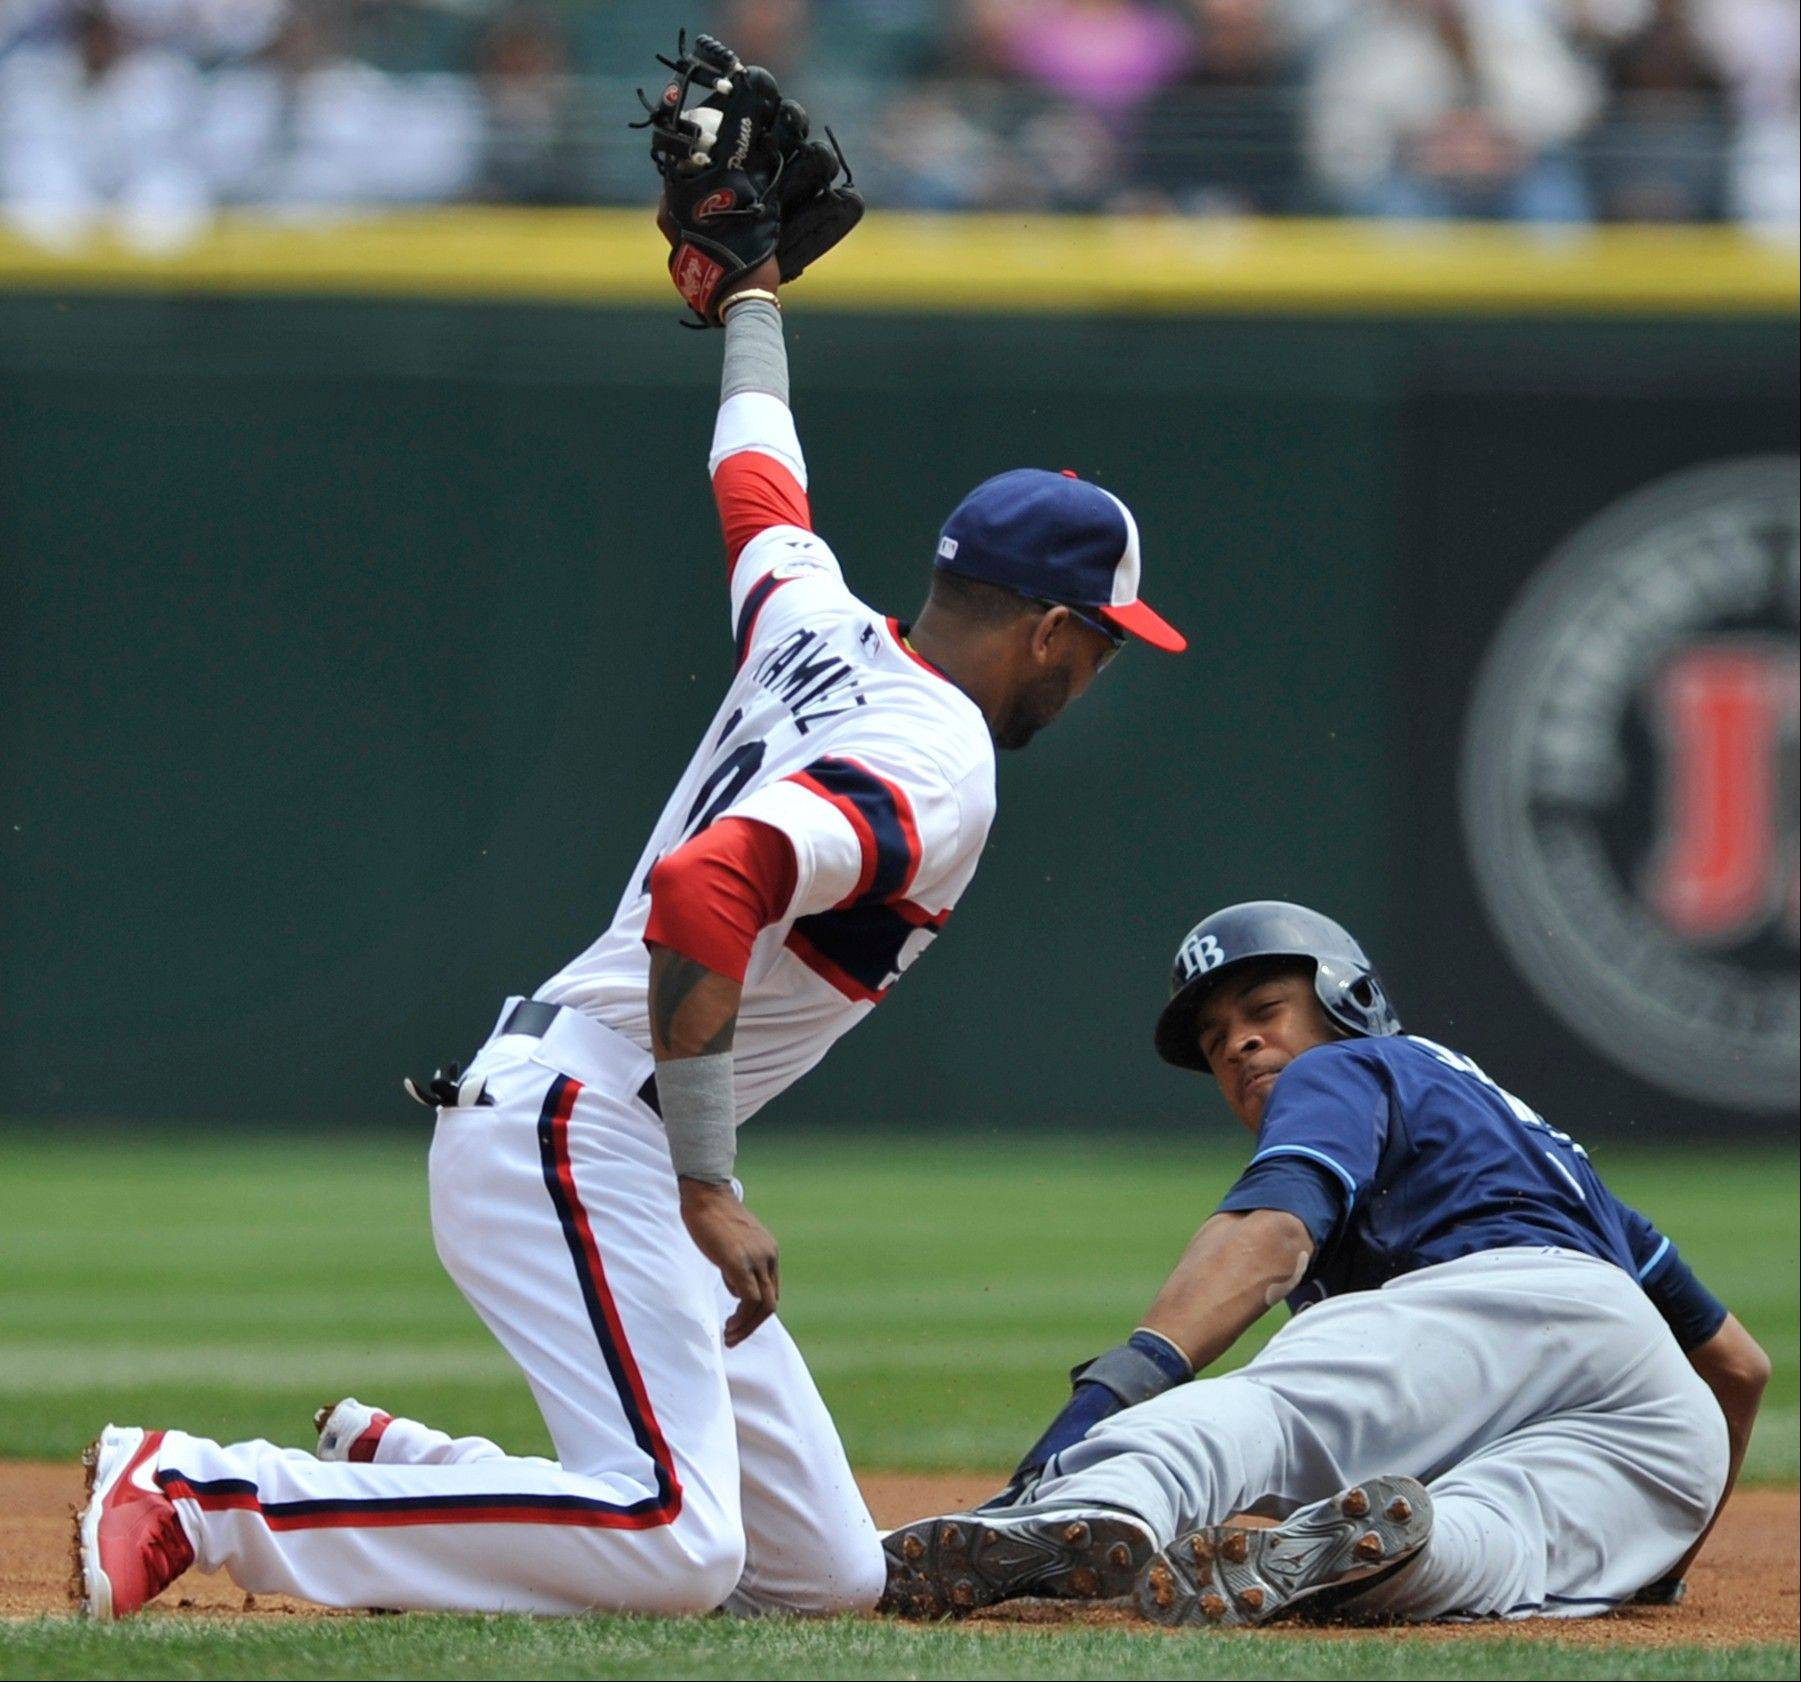 Chicago White Sox shortstop Alexei Ramirez, left, tags out Tampa Bay Rays' Desmond Jennings who was attempting to steal second base during the first inning of a baseball game in Chicago, Sunday, April 28, 2013.